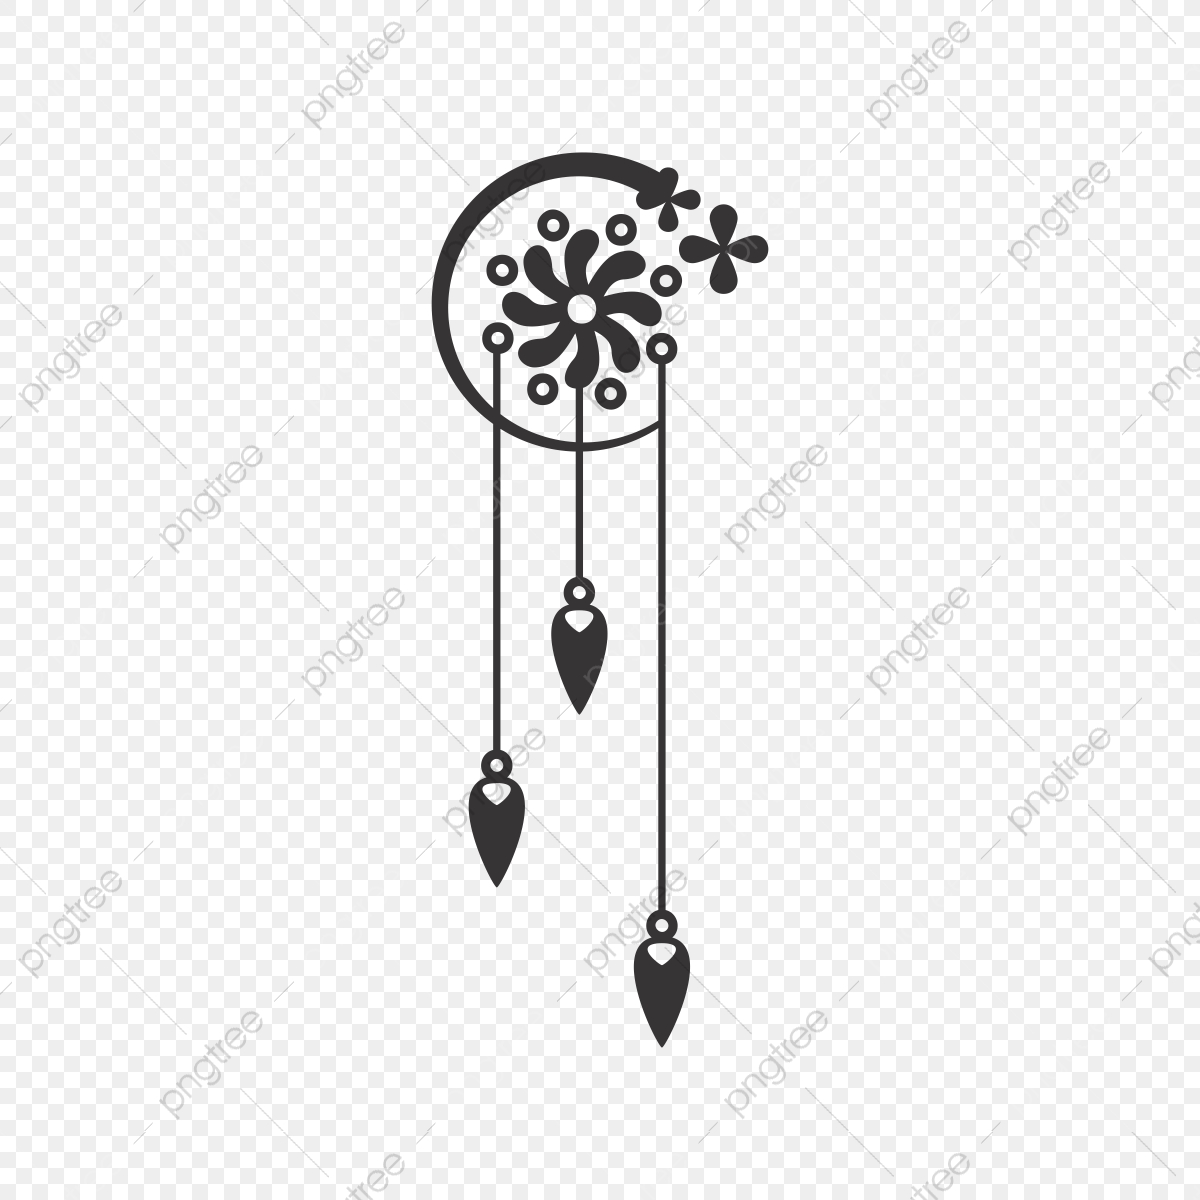 Design Clipart Png Images Vector And Psd Files Free Download On Pngtree